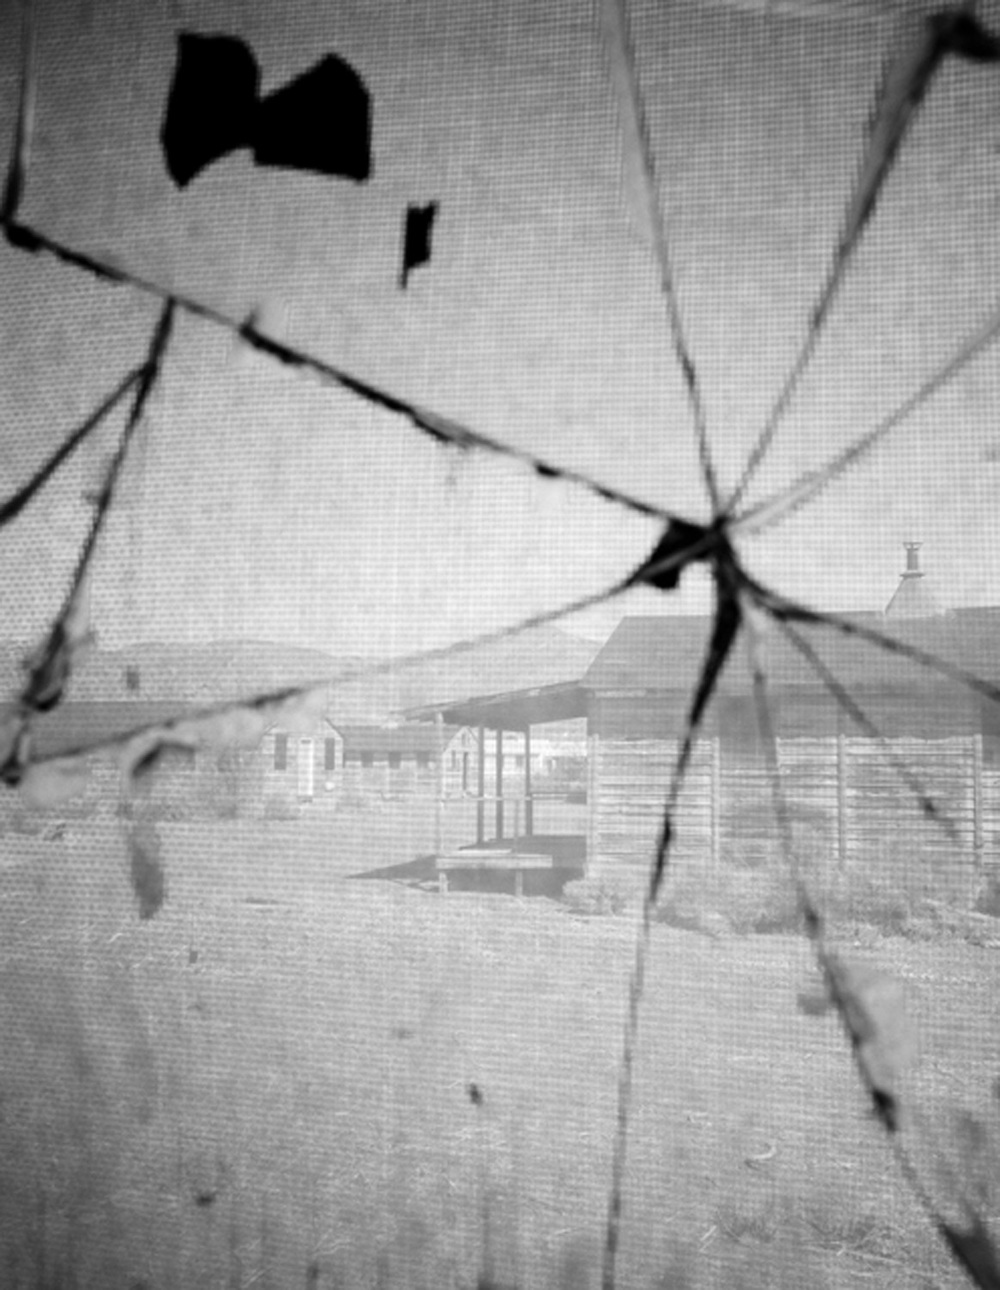 View through cracked glass, enlisted men's' barracks